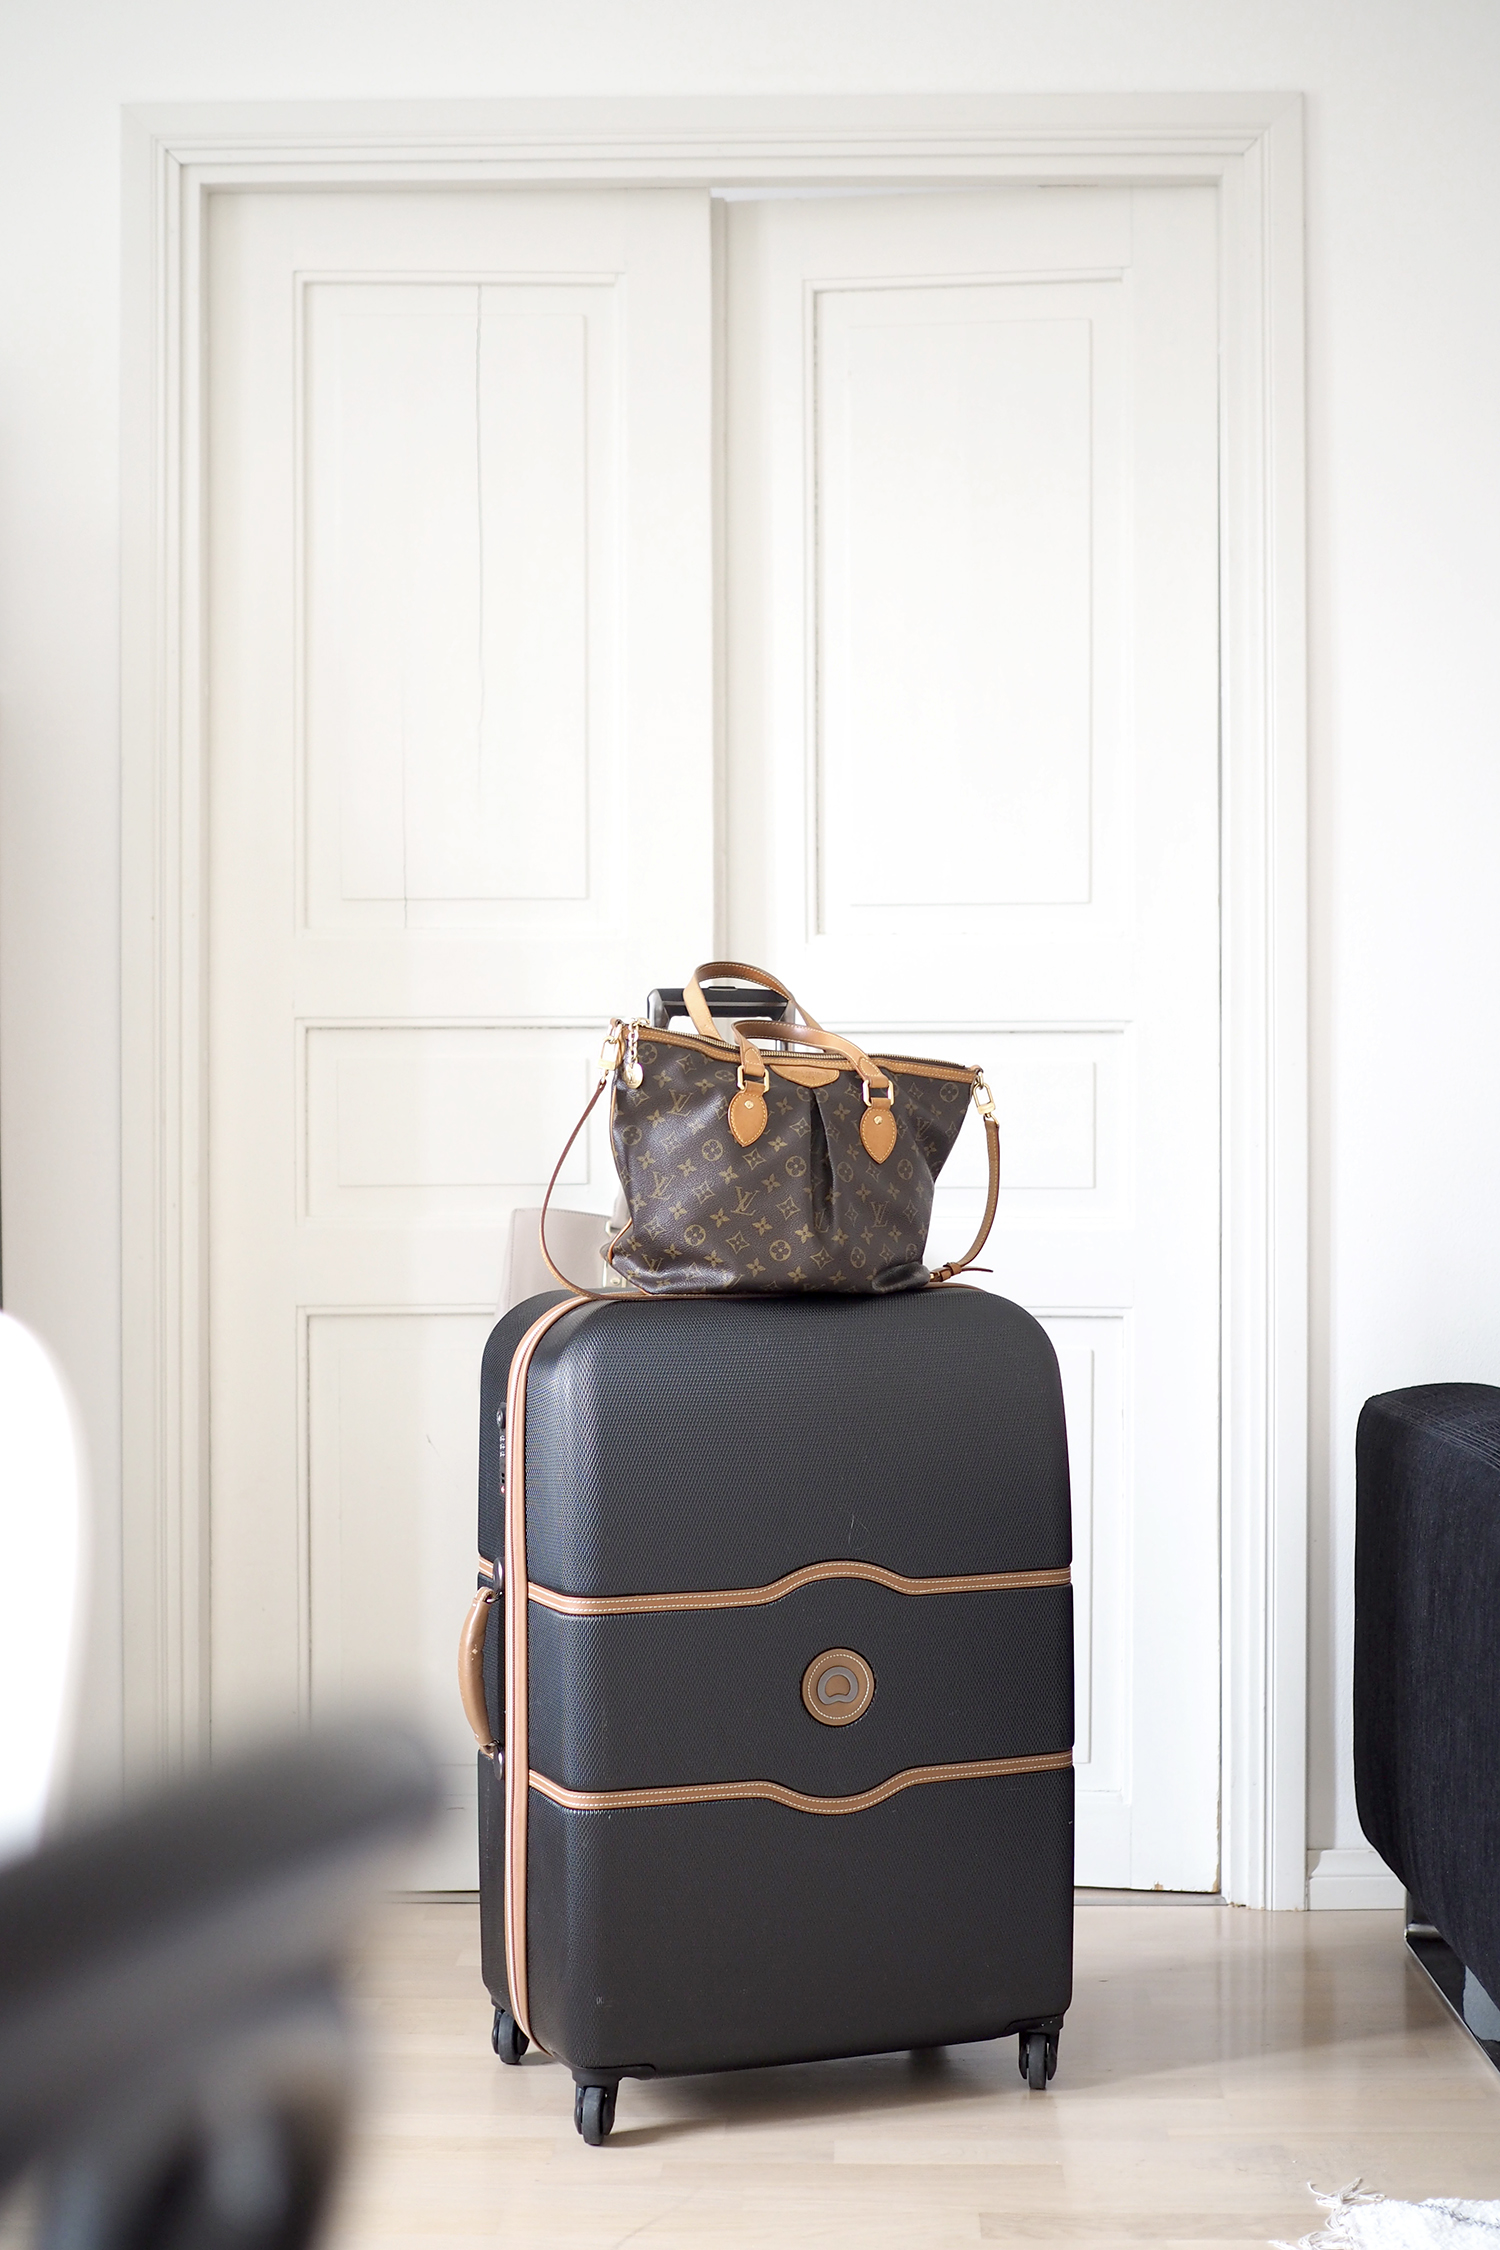 Char and the city - Travelling with Delseys suitcase and Louis Vuitton -bag - read more on the blog (link in bio)